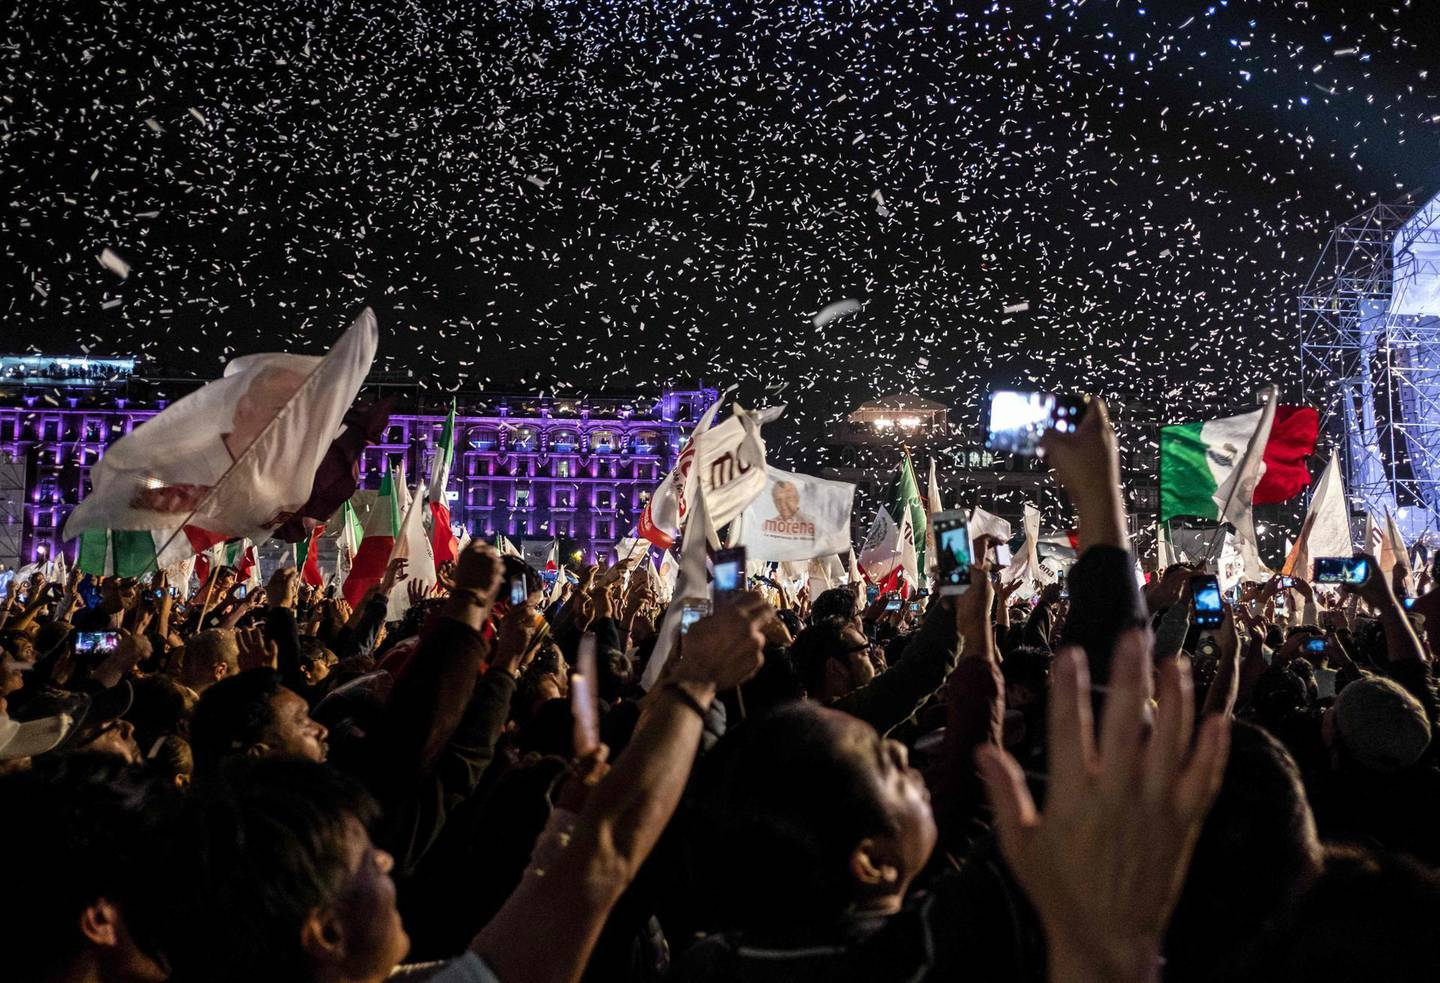 """Supporters of the presidential candidate for the """"Juntos haremos historia"""" coalition, Andres Manuel Lopez Obrador, celebrate at the Zocalo square in Mexico City, after getting the preliminary results of the general elections on July 1, 2018.  Anti-establishment leftist Andres Manuel Lopez Obrador won Mexico's presidential election Sunday by a large margin, according to exit polls, in a landmark break with the parties that have governed for nearly a century. / AFP / Guillermo Arias"""